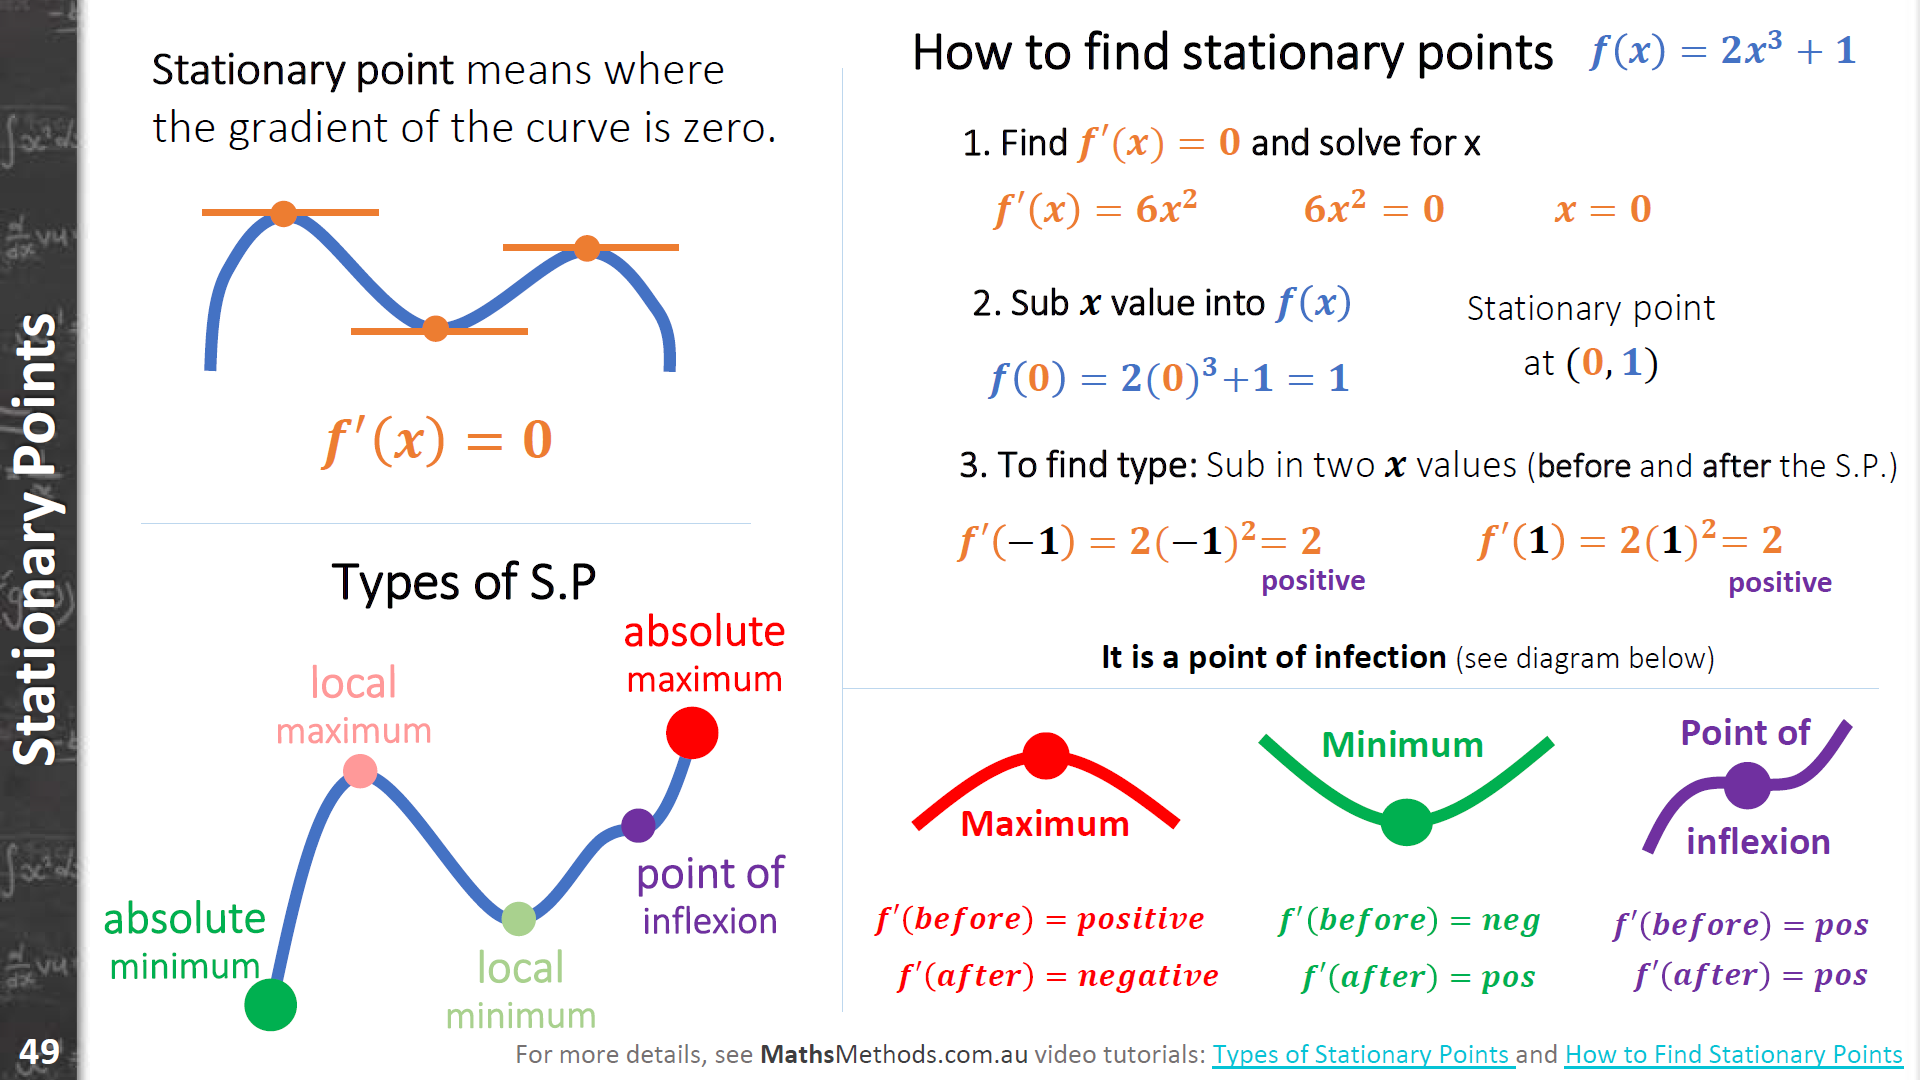 Stationary Points in Maths Methods